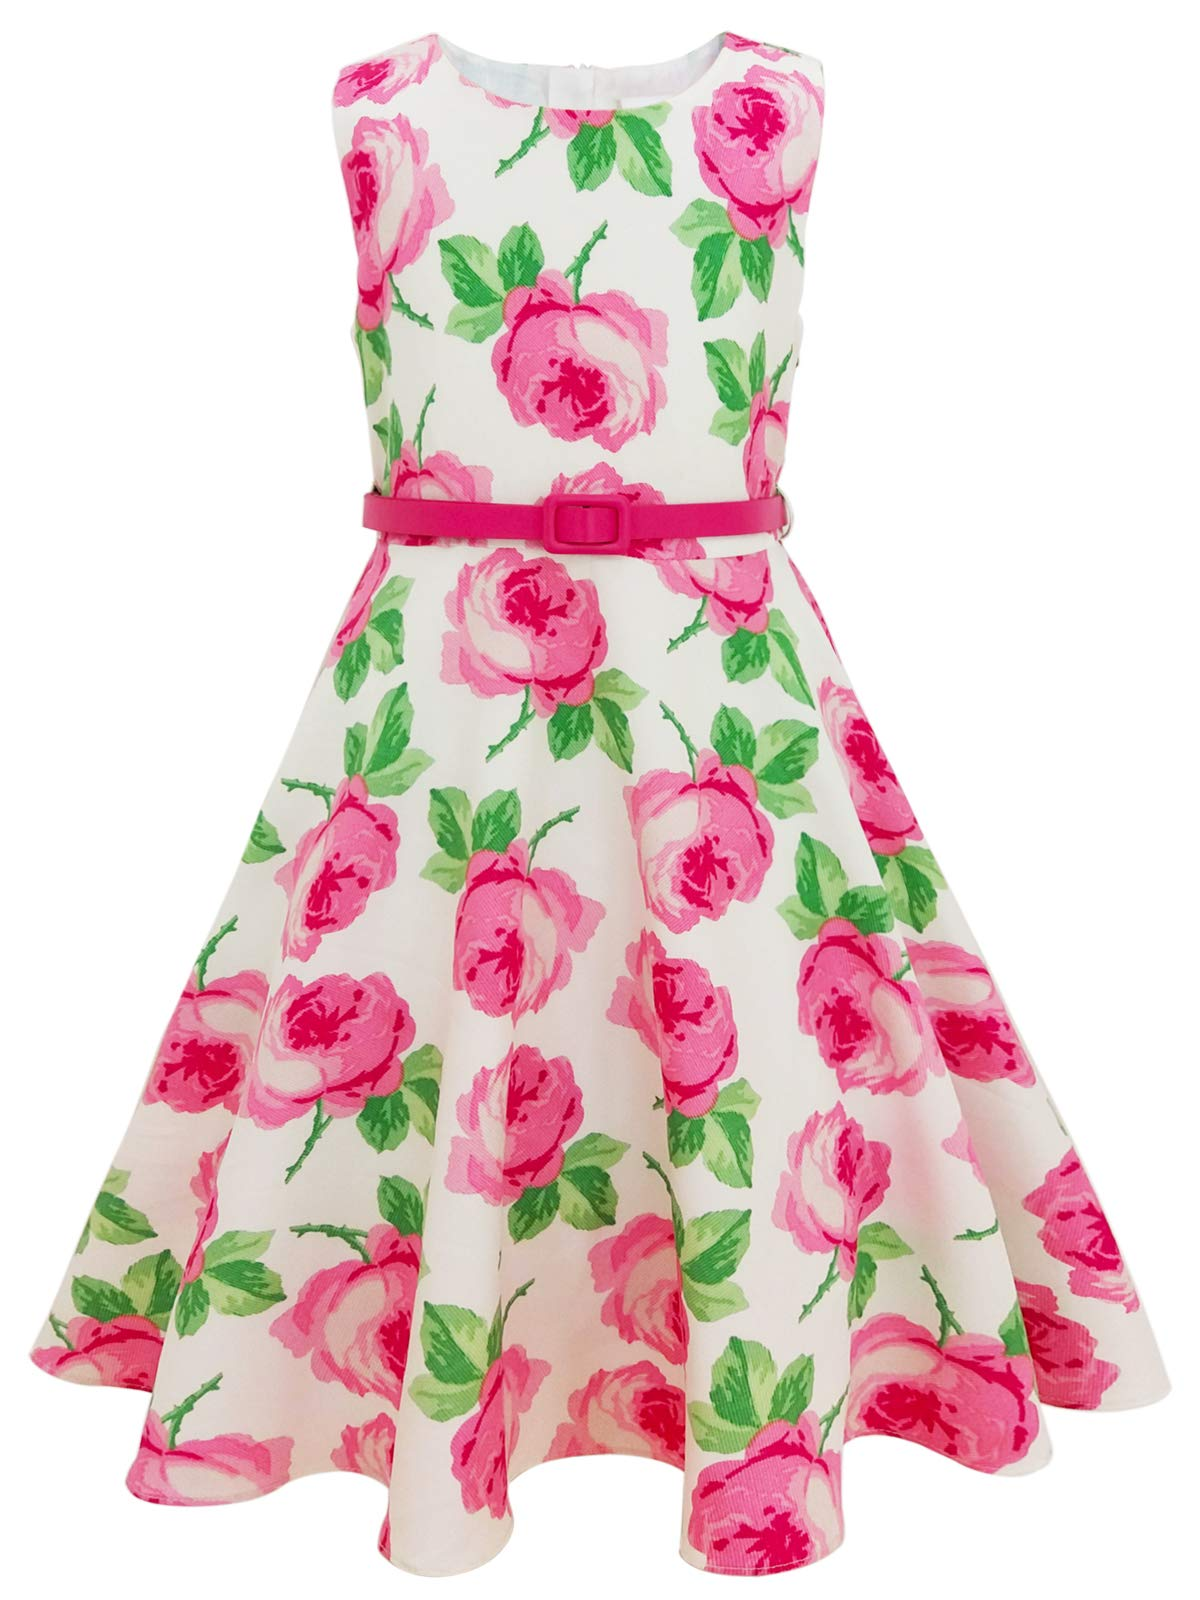 a77fbcf12663 Bonny Billy Girls Classy Vintage Floral Swing Kids Party Dresses product  image